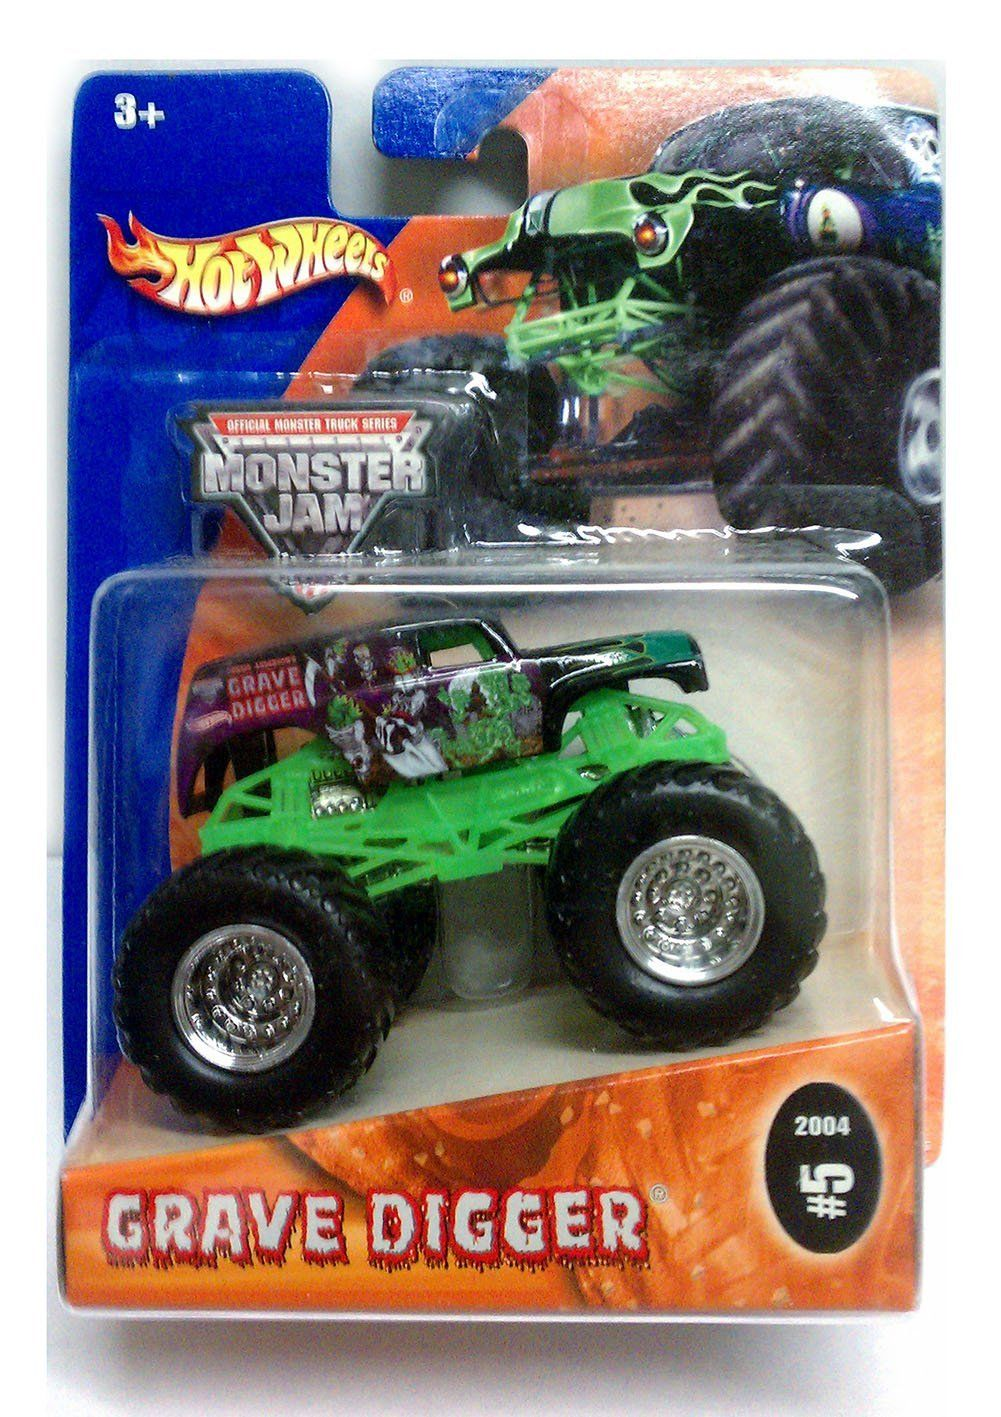 Amazon Com Grave Digger Monster Truck 2004 Hot Wheels Monster Jam 5 1 64 Scale Collectible Die Monster Trucks Hot Wheels Monster Jam Hot Wheels Toys